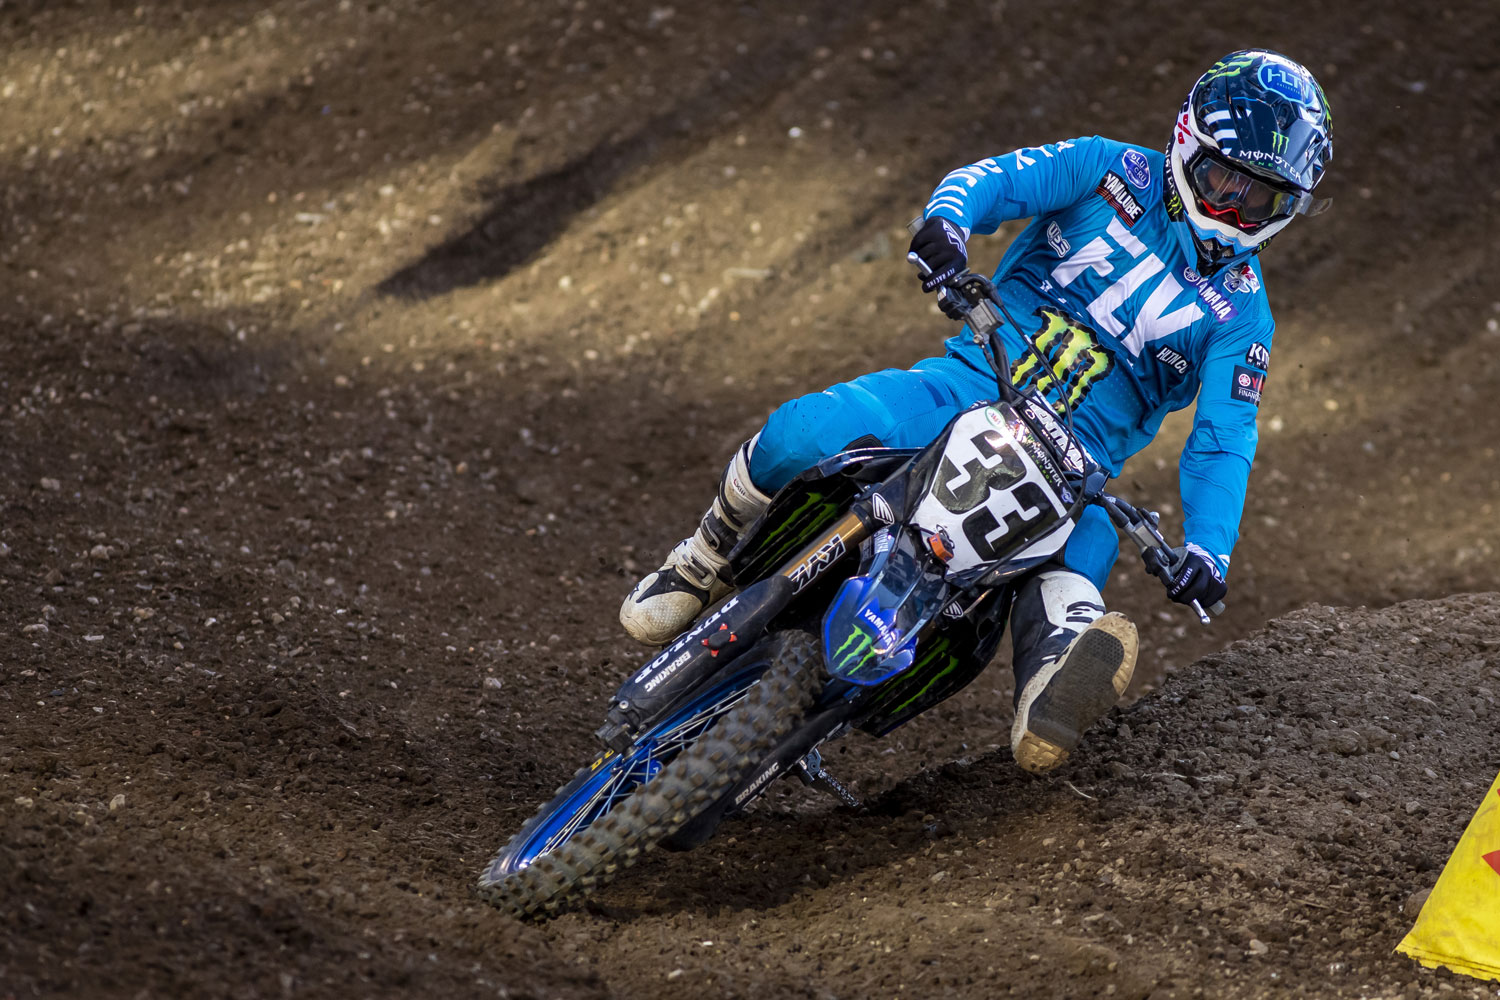 GRANT_2019_EAST-RUTHERFORD_SX_web.jpg